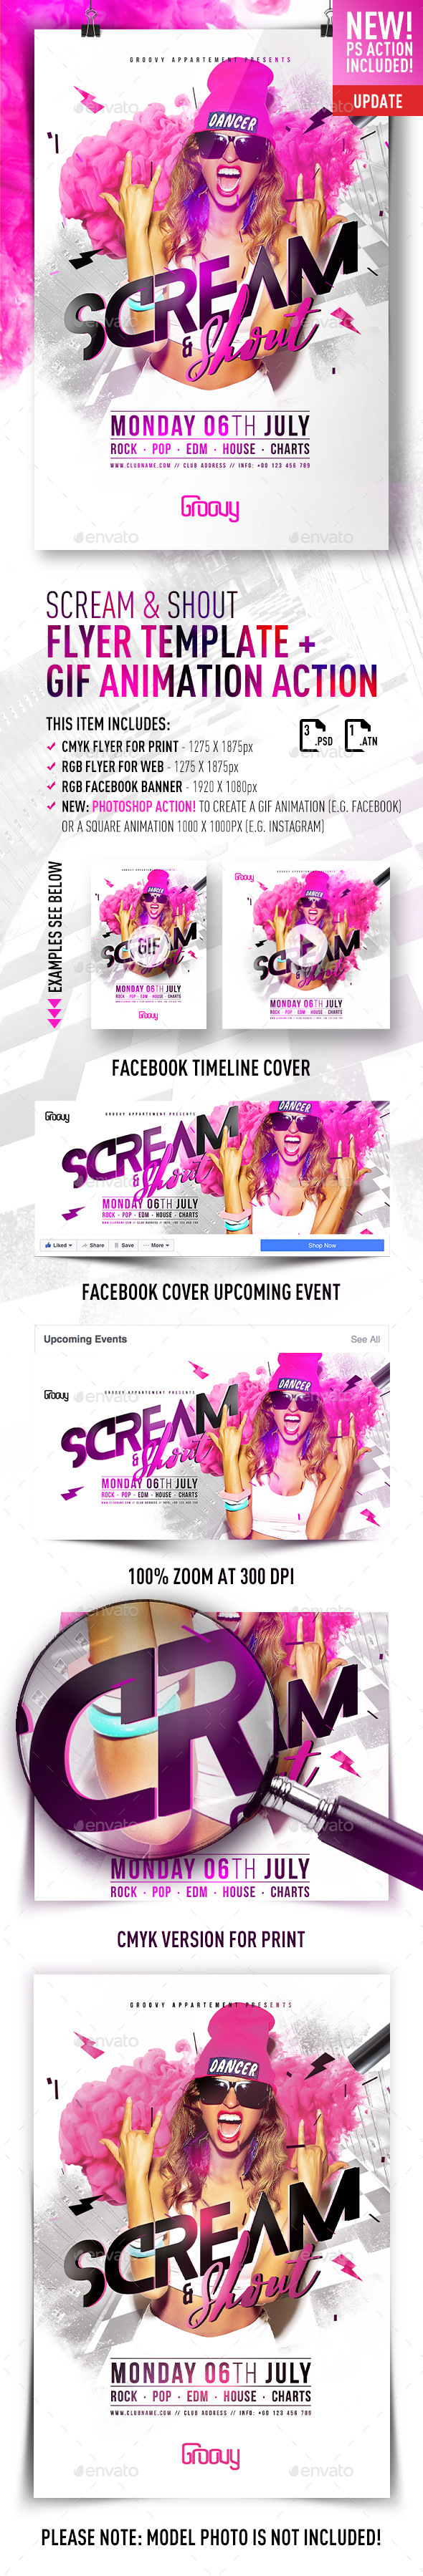 Scream & Shout Flyer Template + GIF Animation Action by feelsmart ...